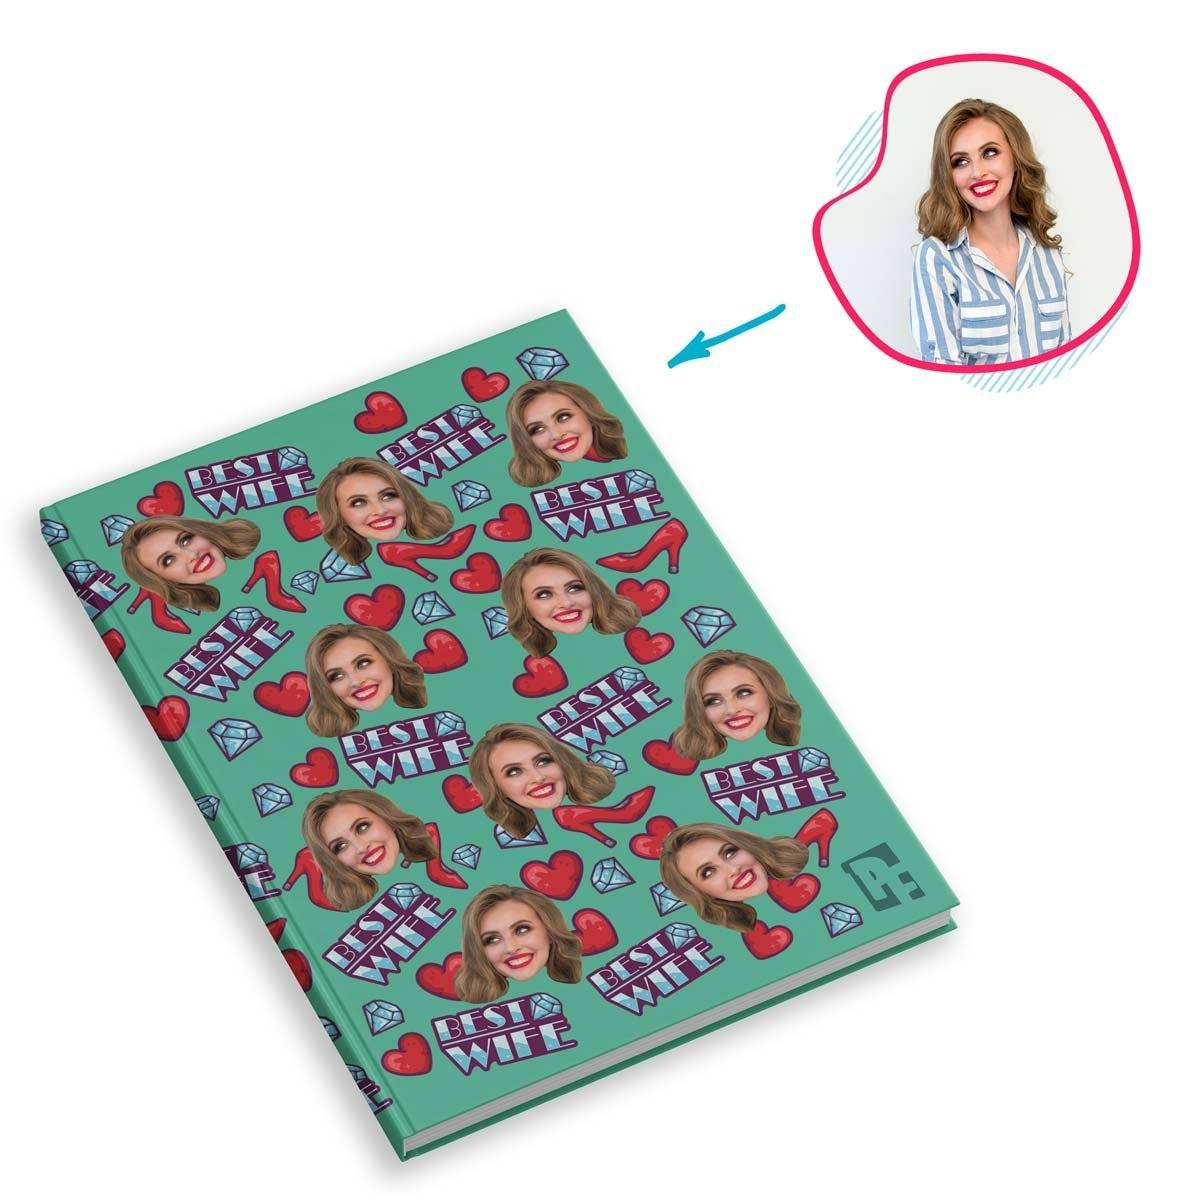 Mint Auntie personalized notebook with photo of face printed on them